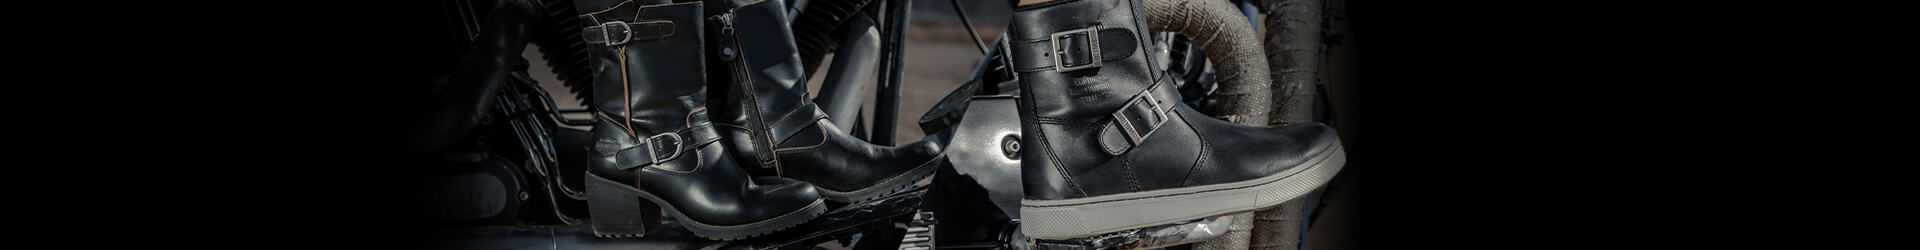 Mens Riding Boots